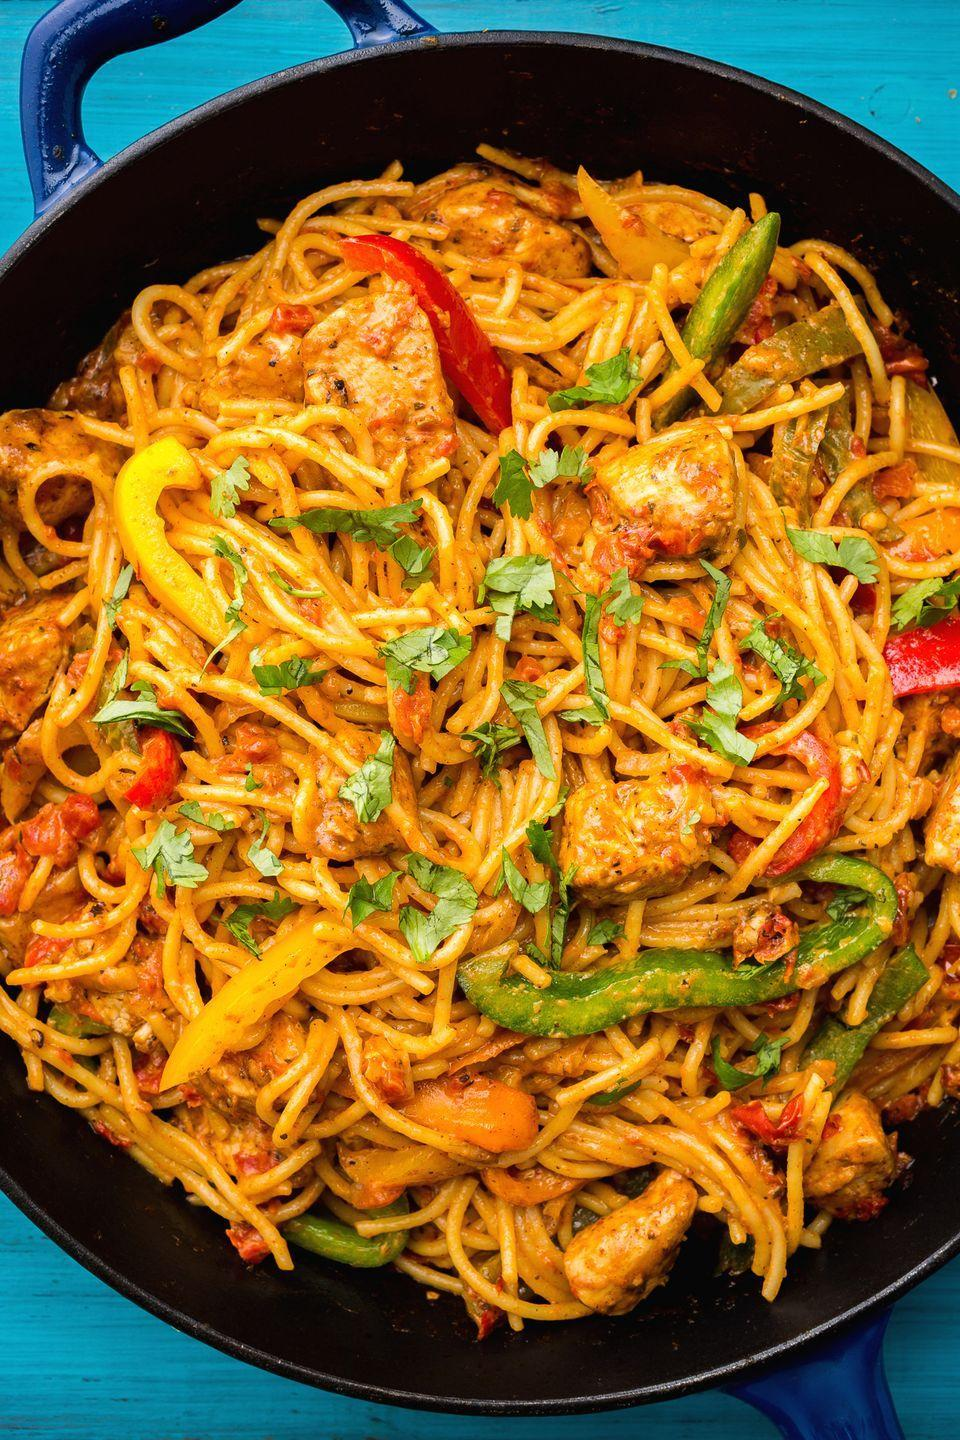 """<p>This pasta is SO creamy, with just the right amount of kick.</p><p>Get the recipe from <a href=""""https://www.delish.com/cooking/recipe-ideas/recipes/a46734/mexican-chicken-pasta-recipe/"""" rel=""""nofollow noopener"""" target=""""_blank"""" data-ylk=""""slk:Delish."""" class=""""link rapid-noclick-resp"""">Delish. </a></p>"""